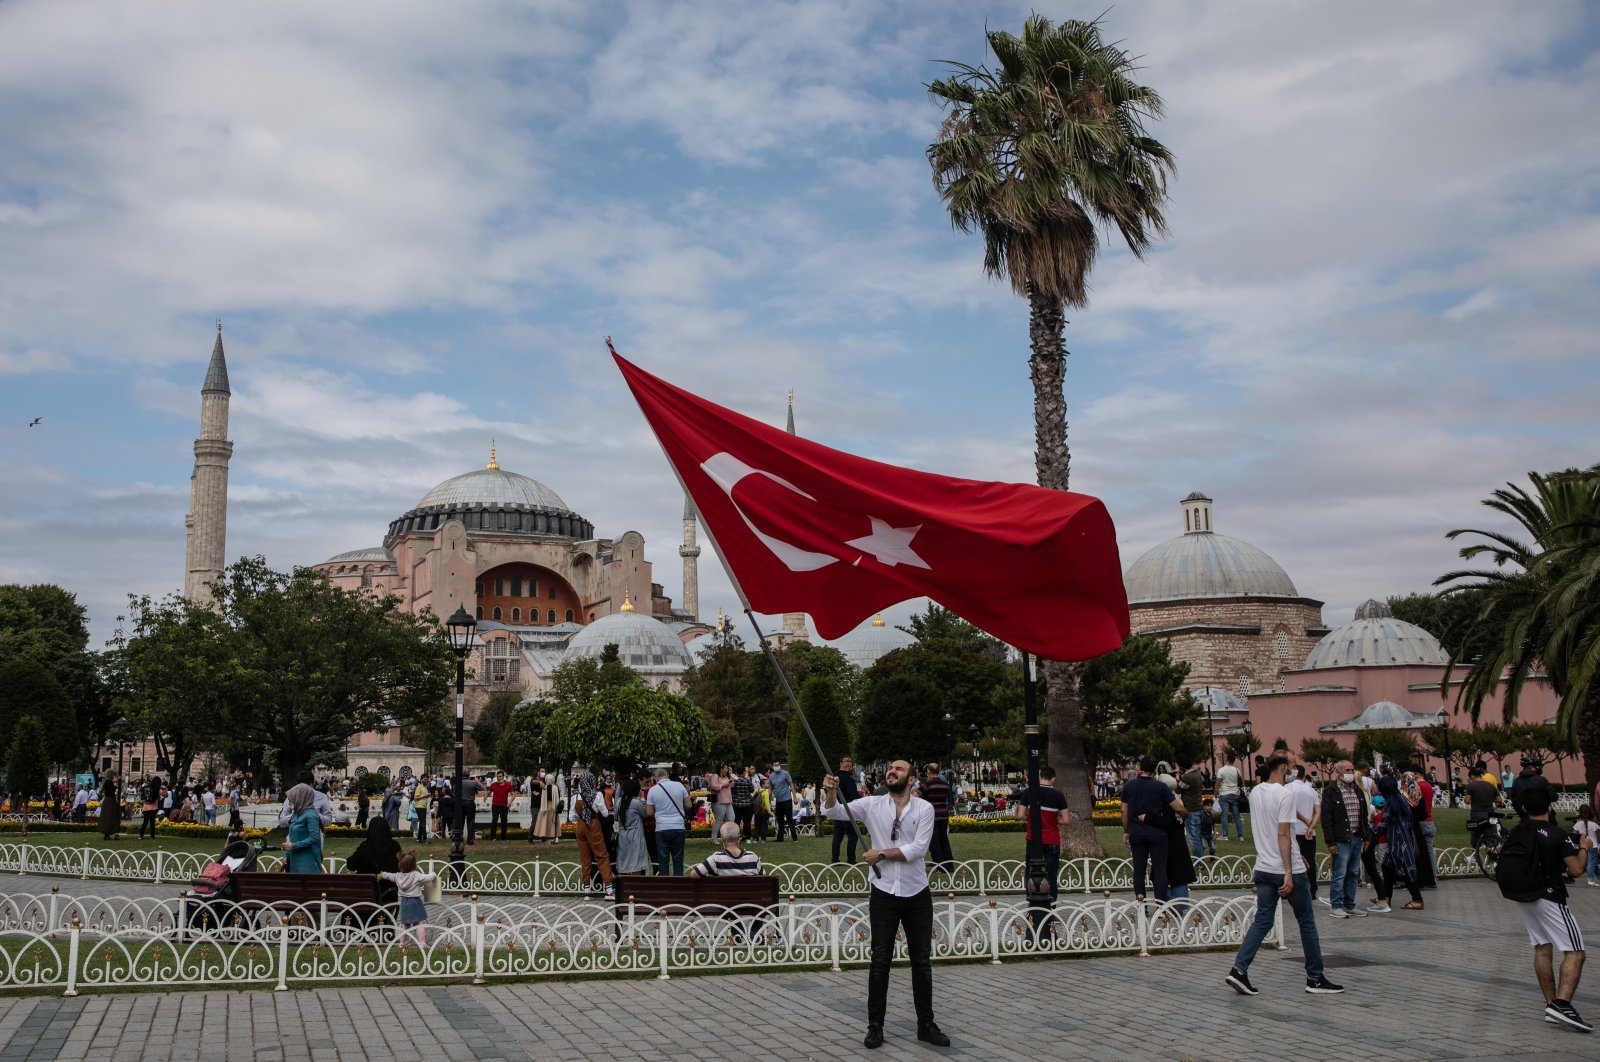 A man waves Turkey's national flag at Sultanahmet Square, on the fourth anniversary of the July 15, 2016 failed coup attempt, Istanbul, Turkey, July 15, 2020. (Photo by Getty Images)